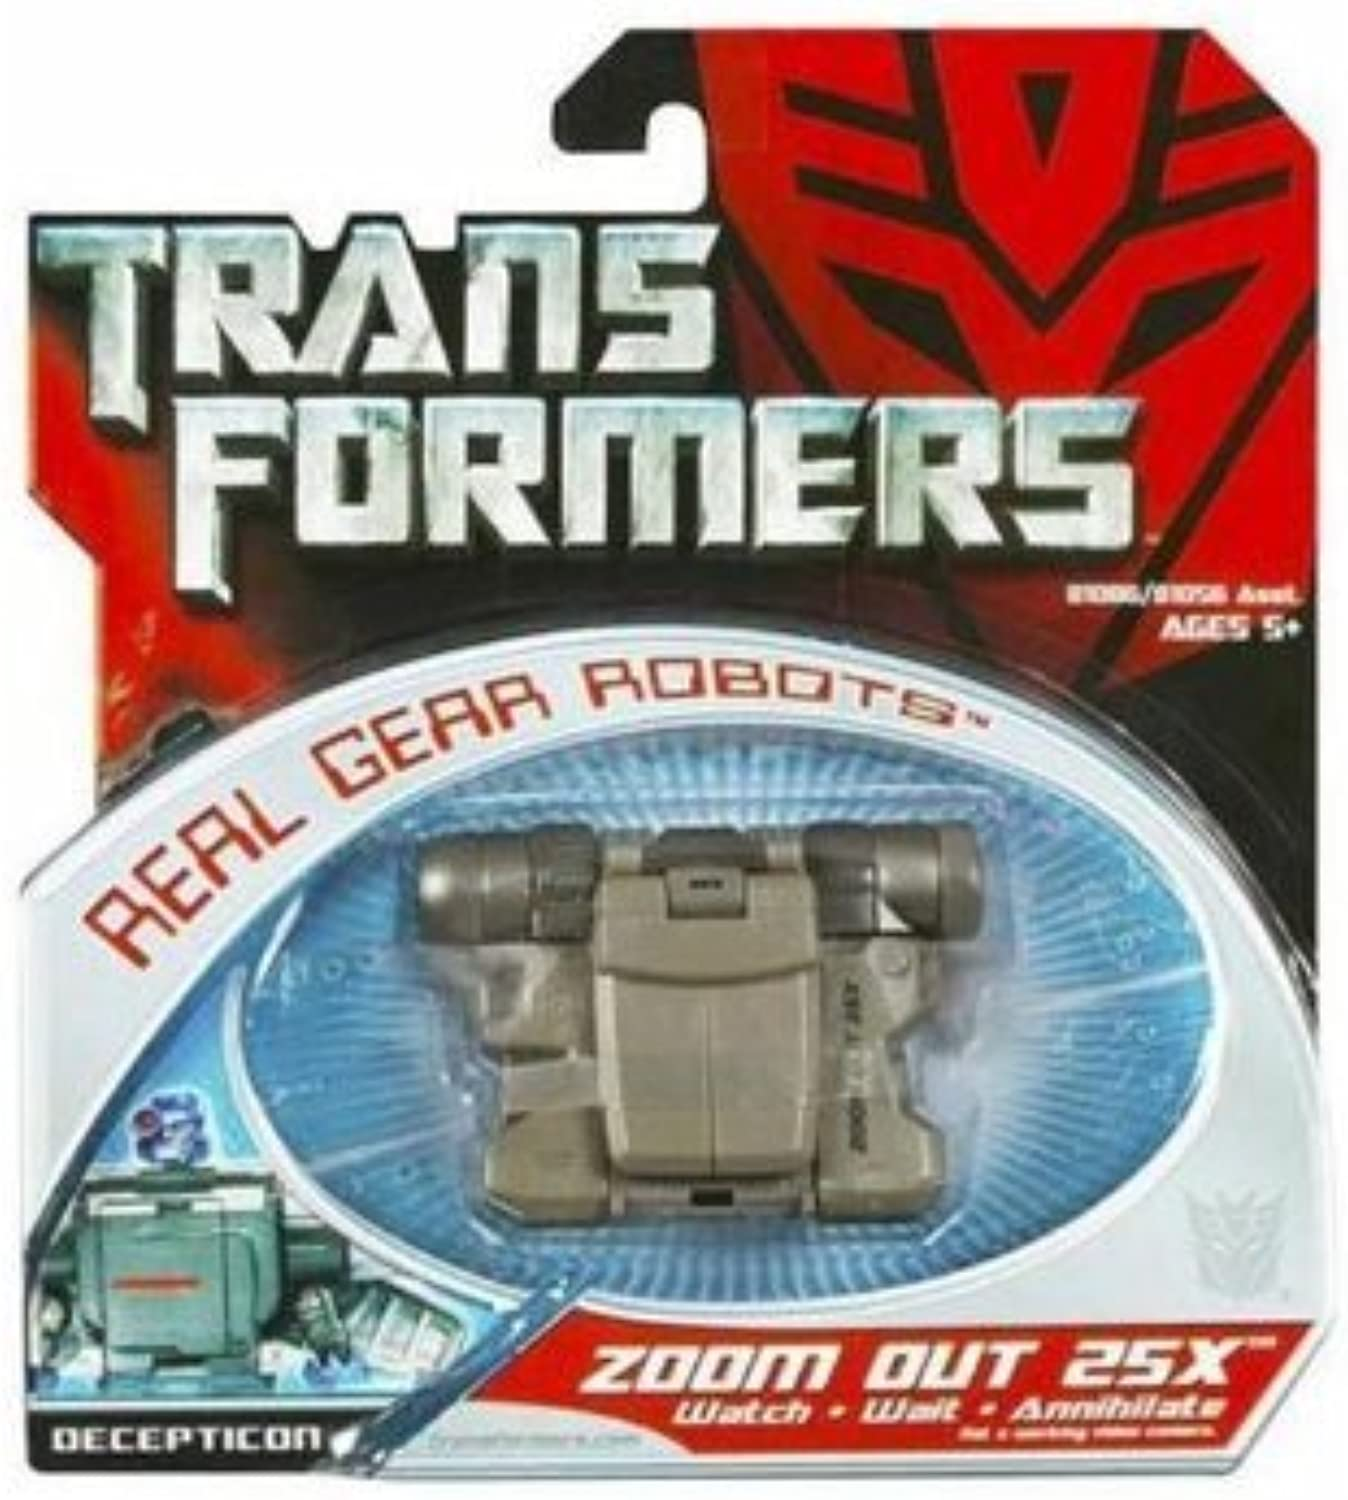 Transformers Real Gear Robots Zoom Out 25X by Hasbro